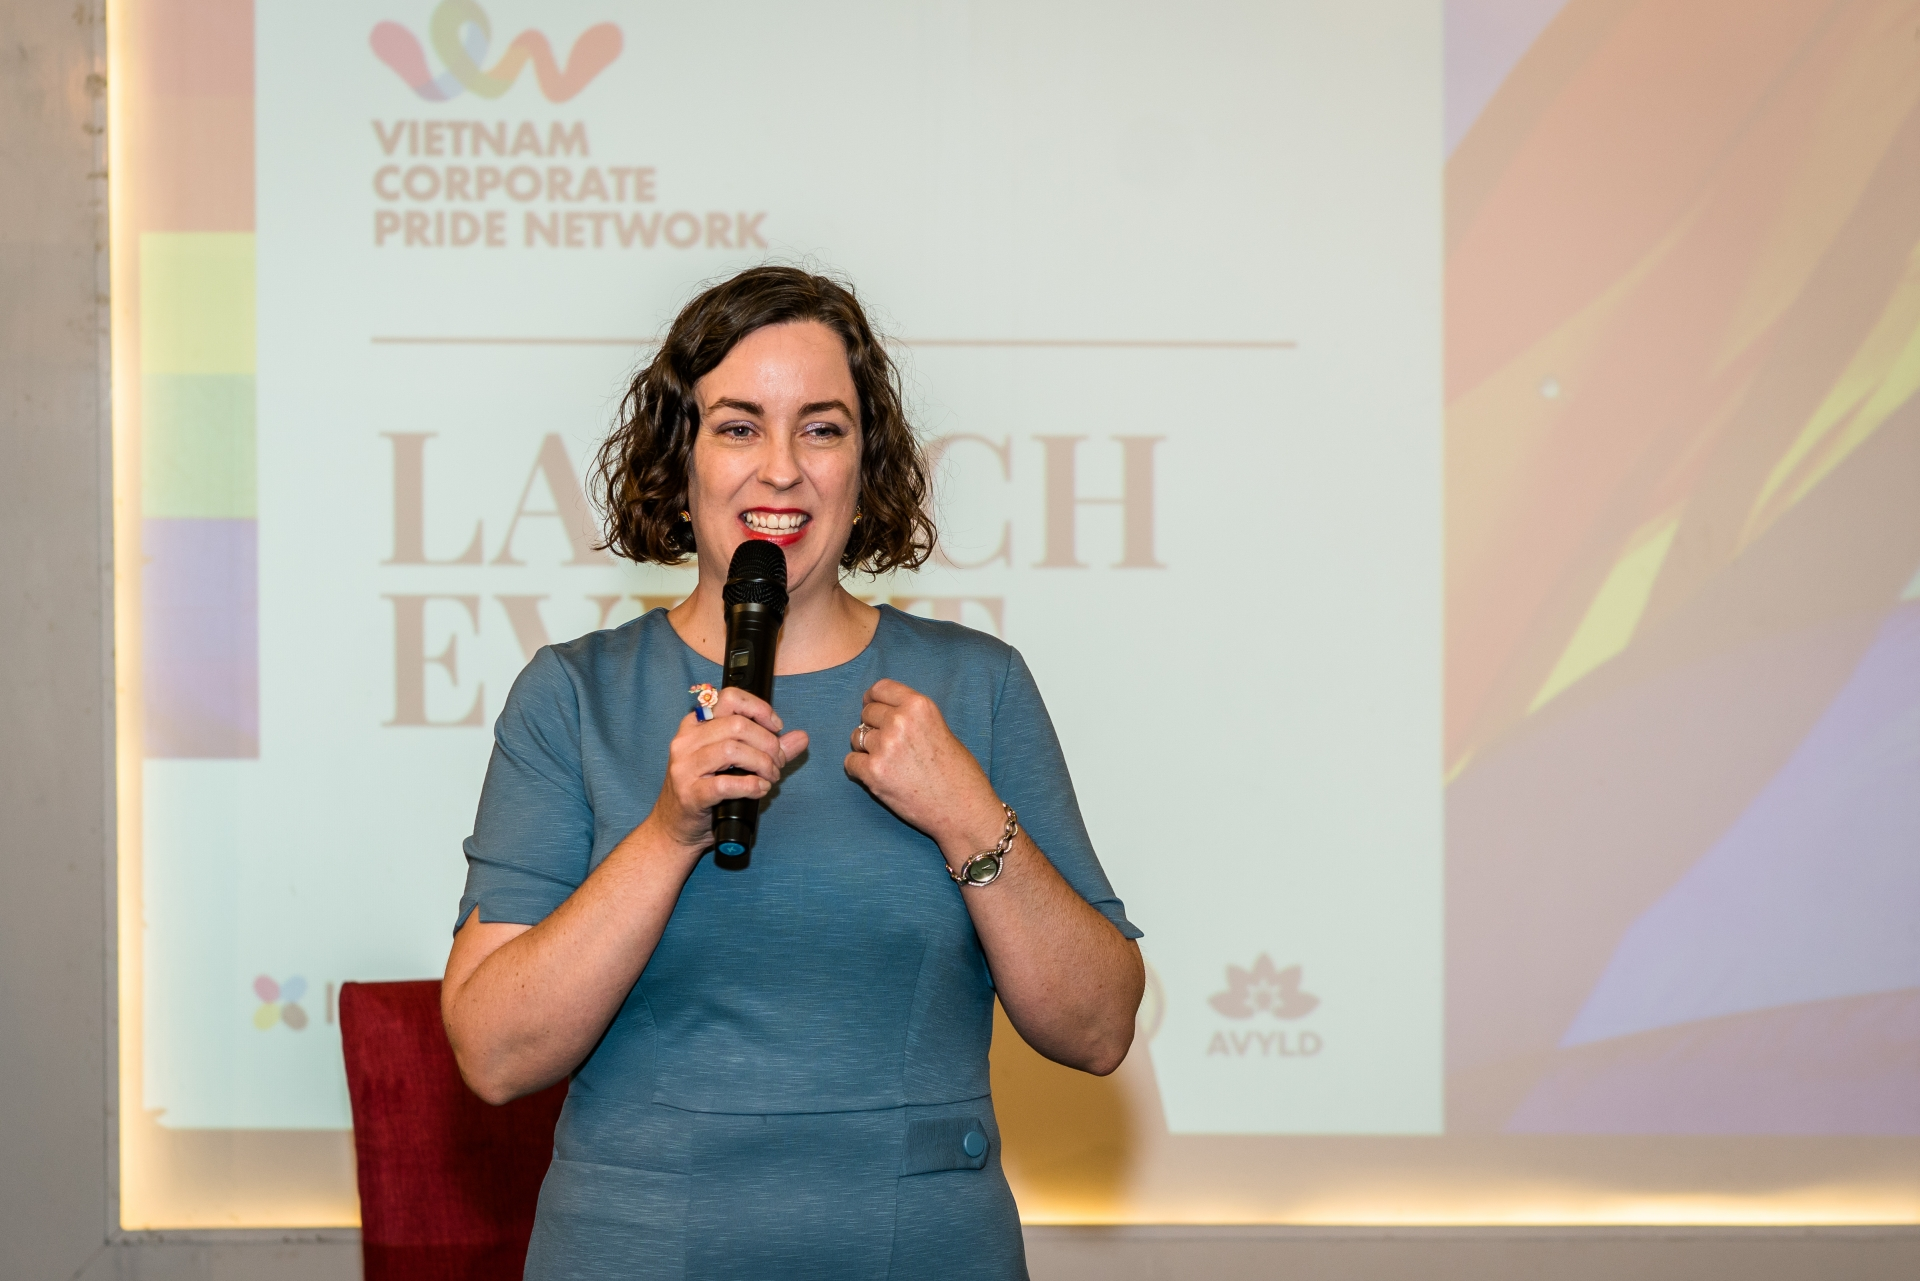 vietnam corporate pride network officially launched